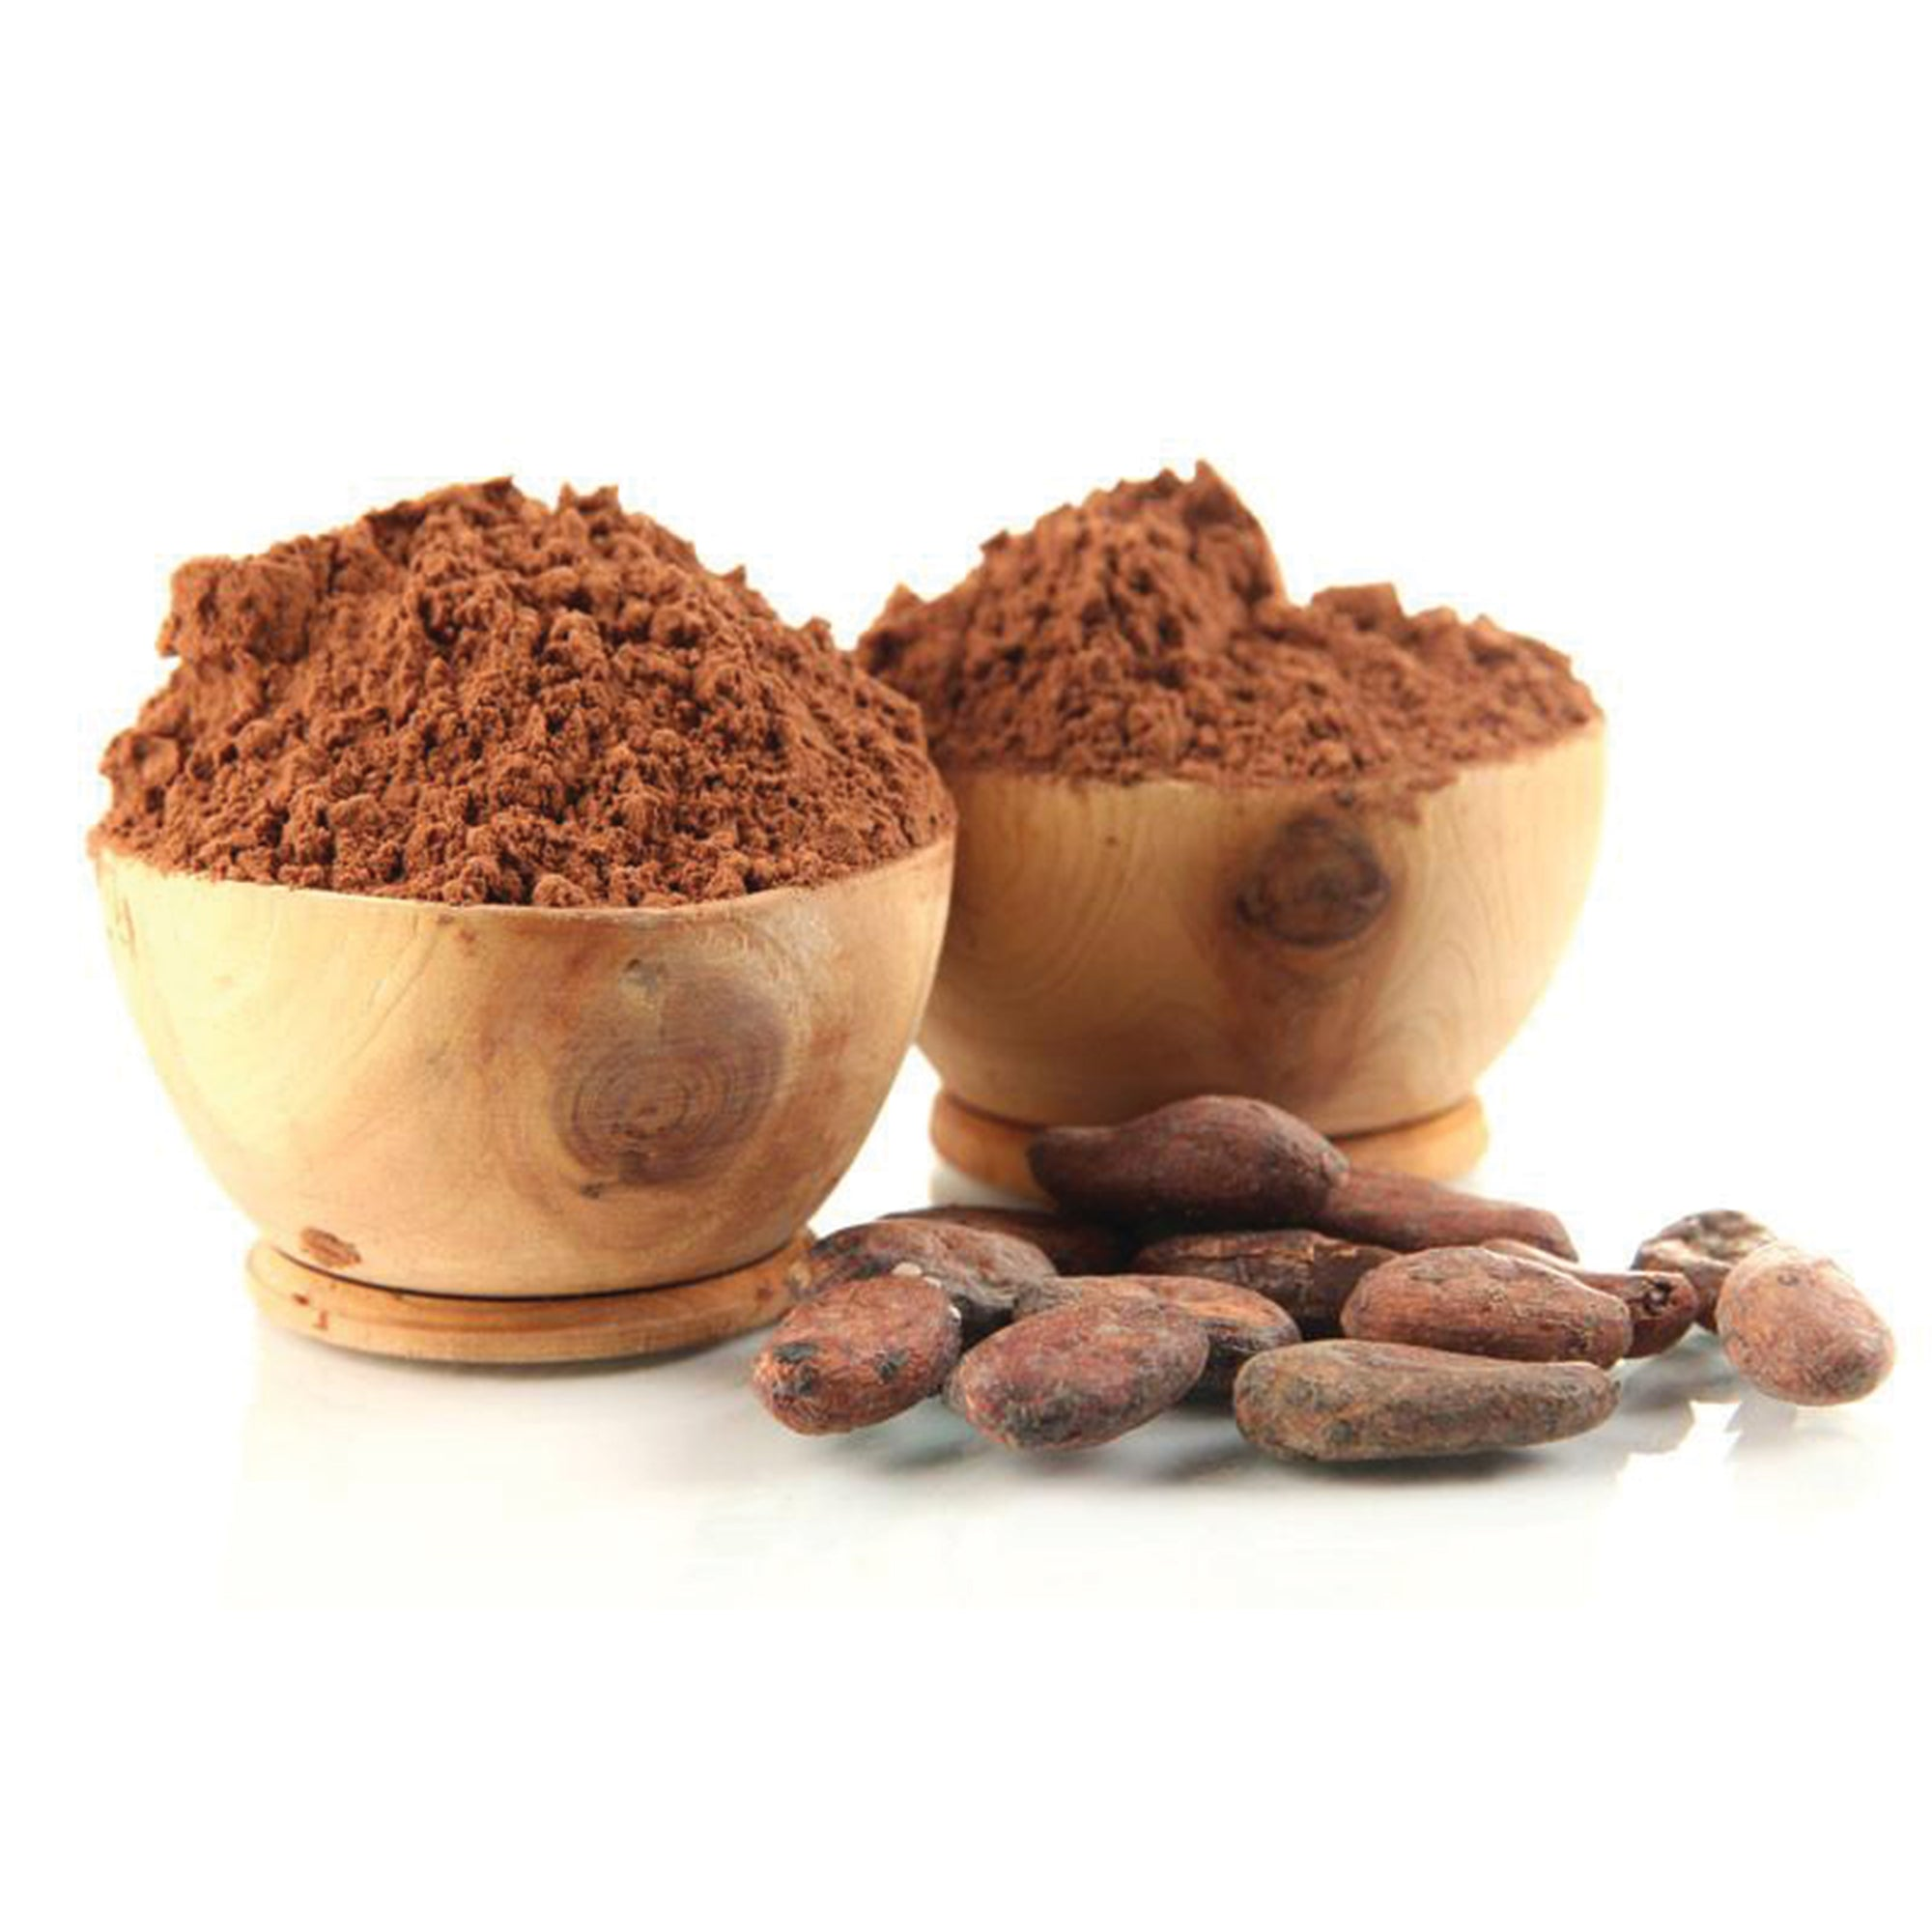 Foods Alive - Organic Cacao Powder - 8 oz